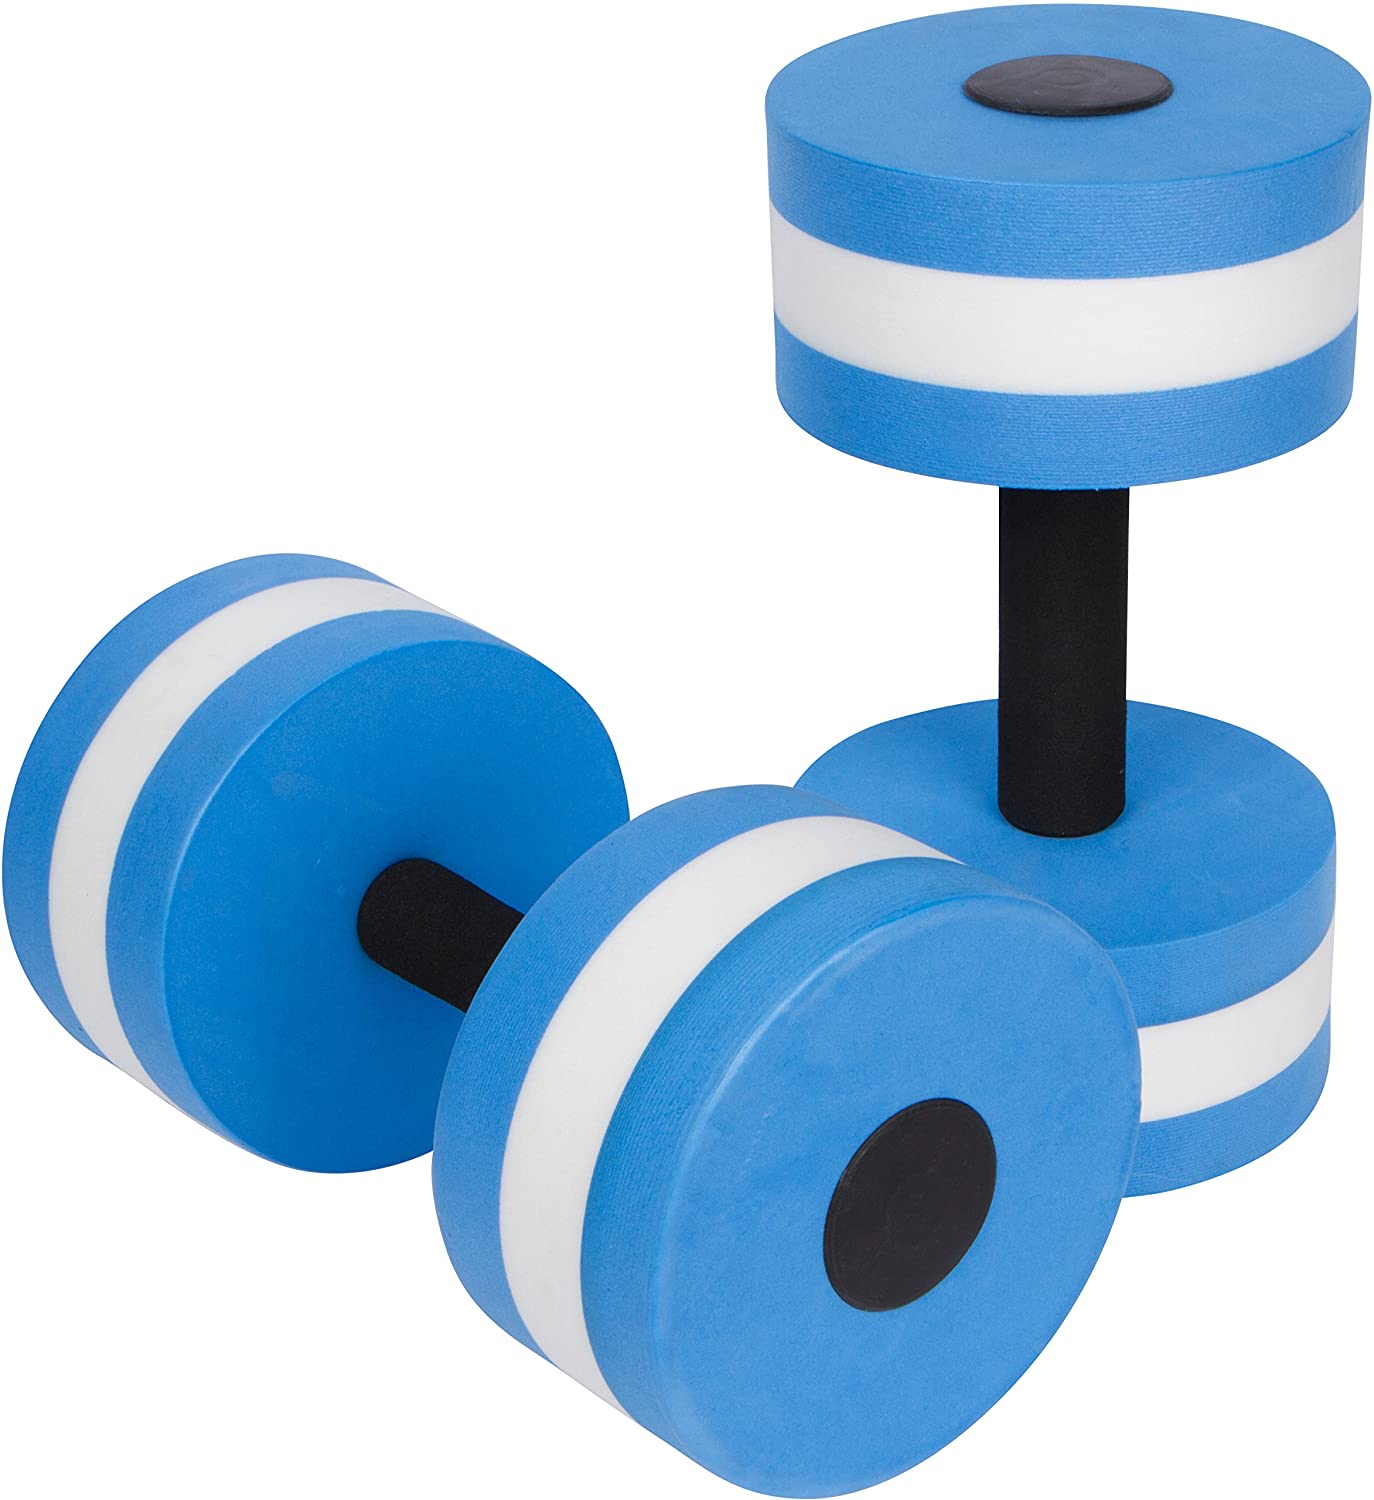 Trademark Innovations Aquatic Exercise Dumbbells, set of two, in blue, best water weights